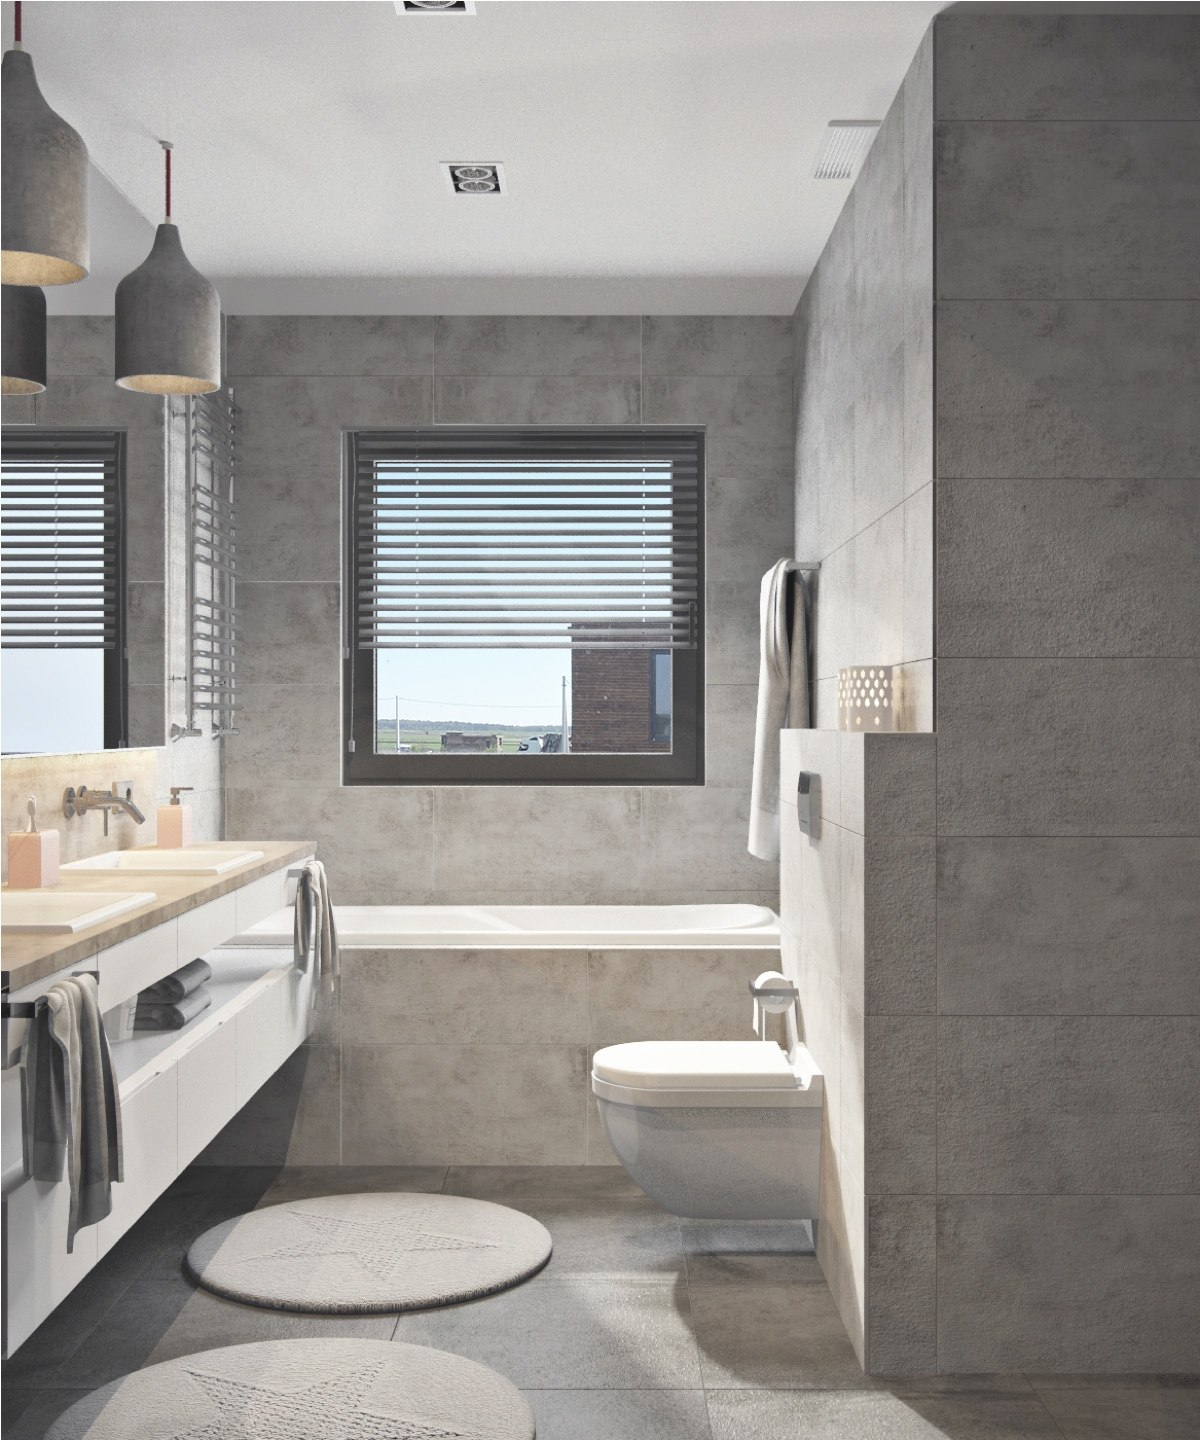 Minimalist Bathroom Design Pinterest: Minimalist Bathroom Designs Looks So Trendy With